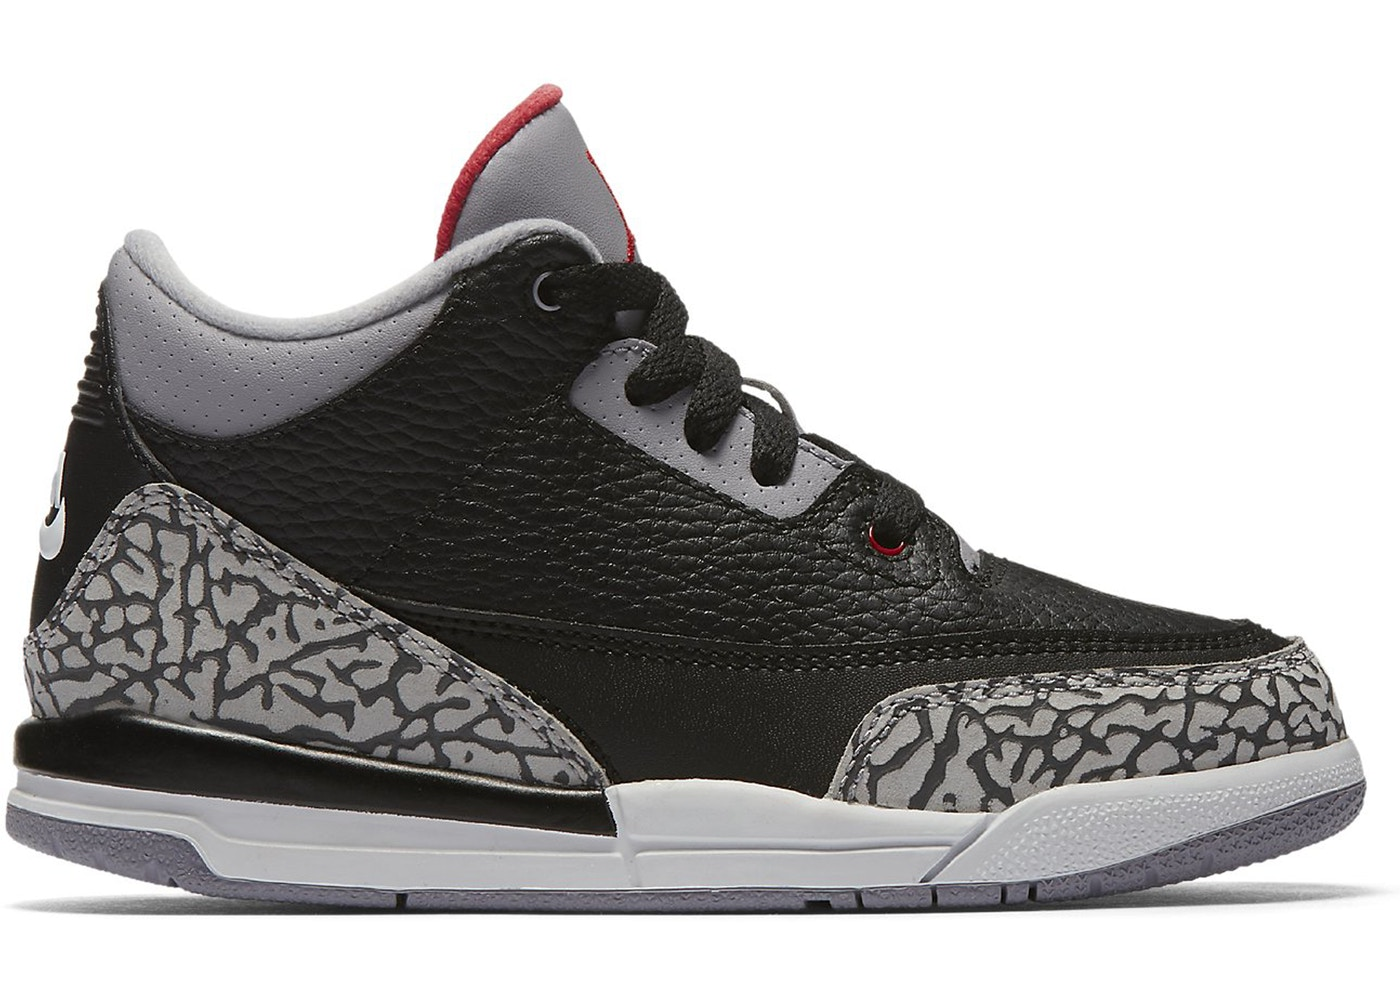 huge discount d0dab 0dbfa Jordan 3 Retro Black Cement 2018 (PS)